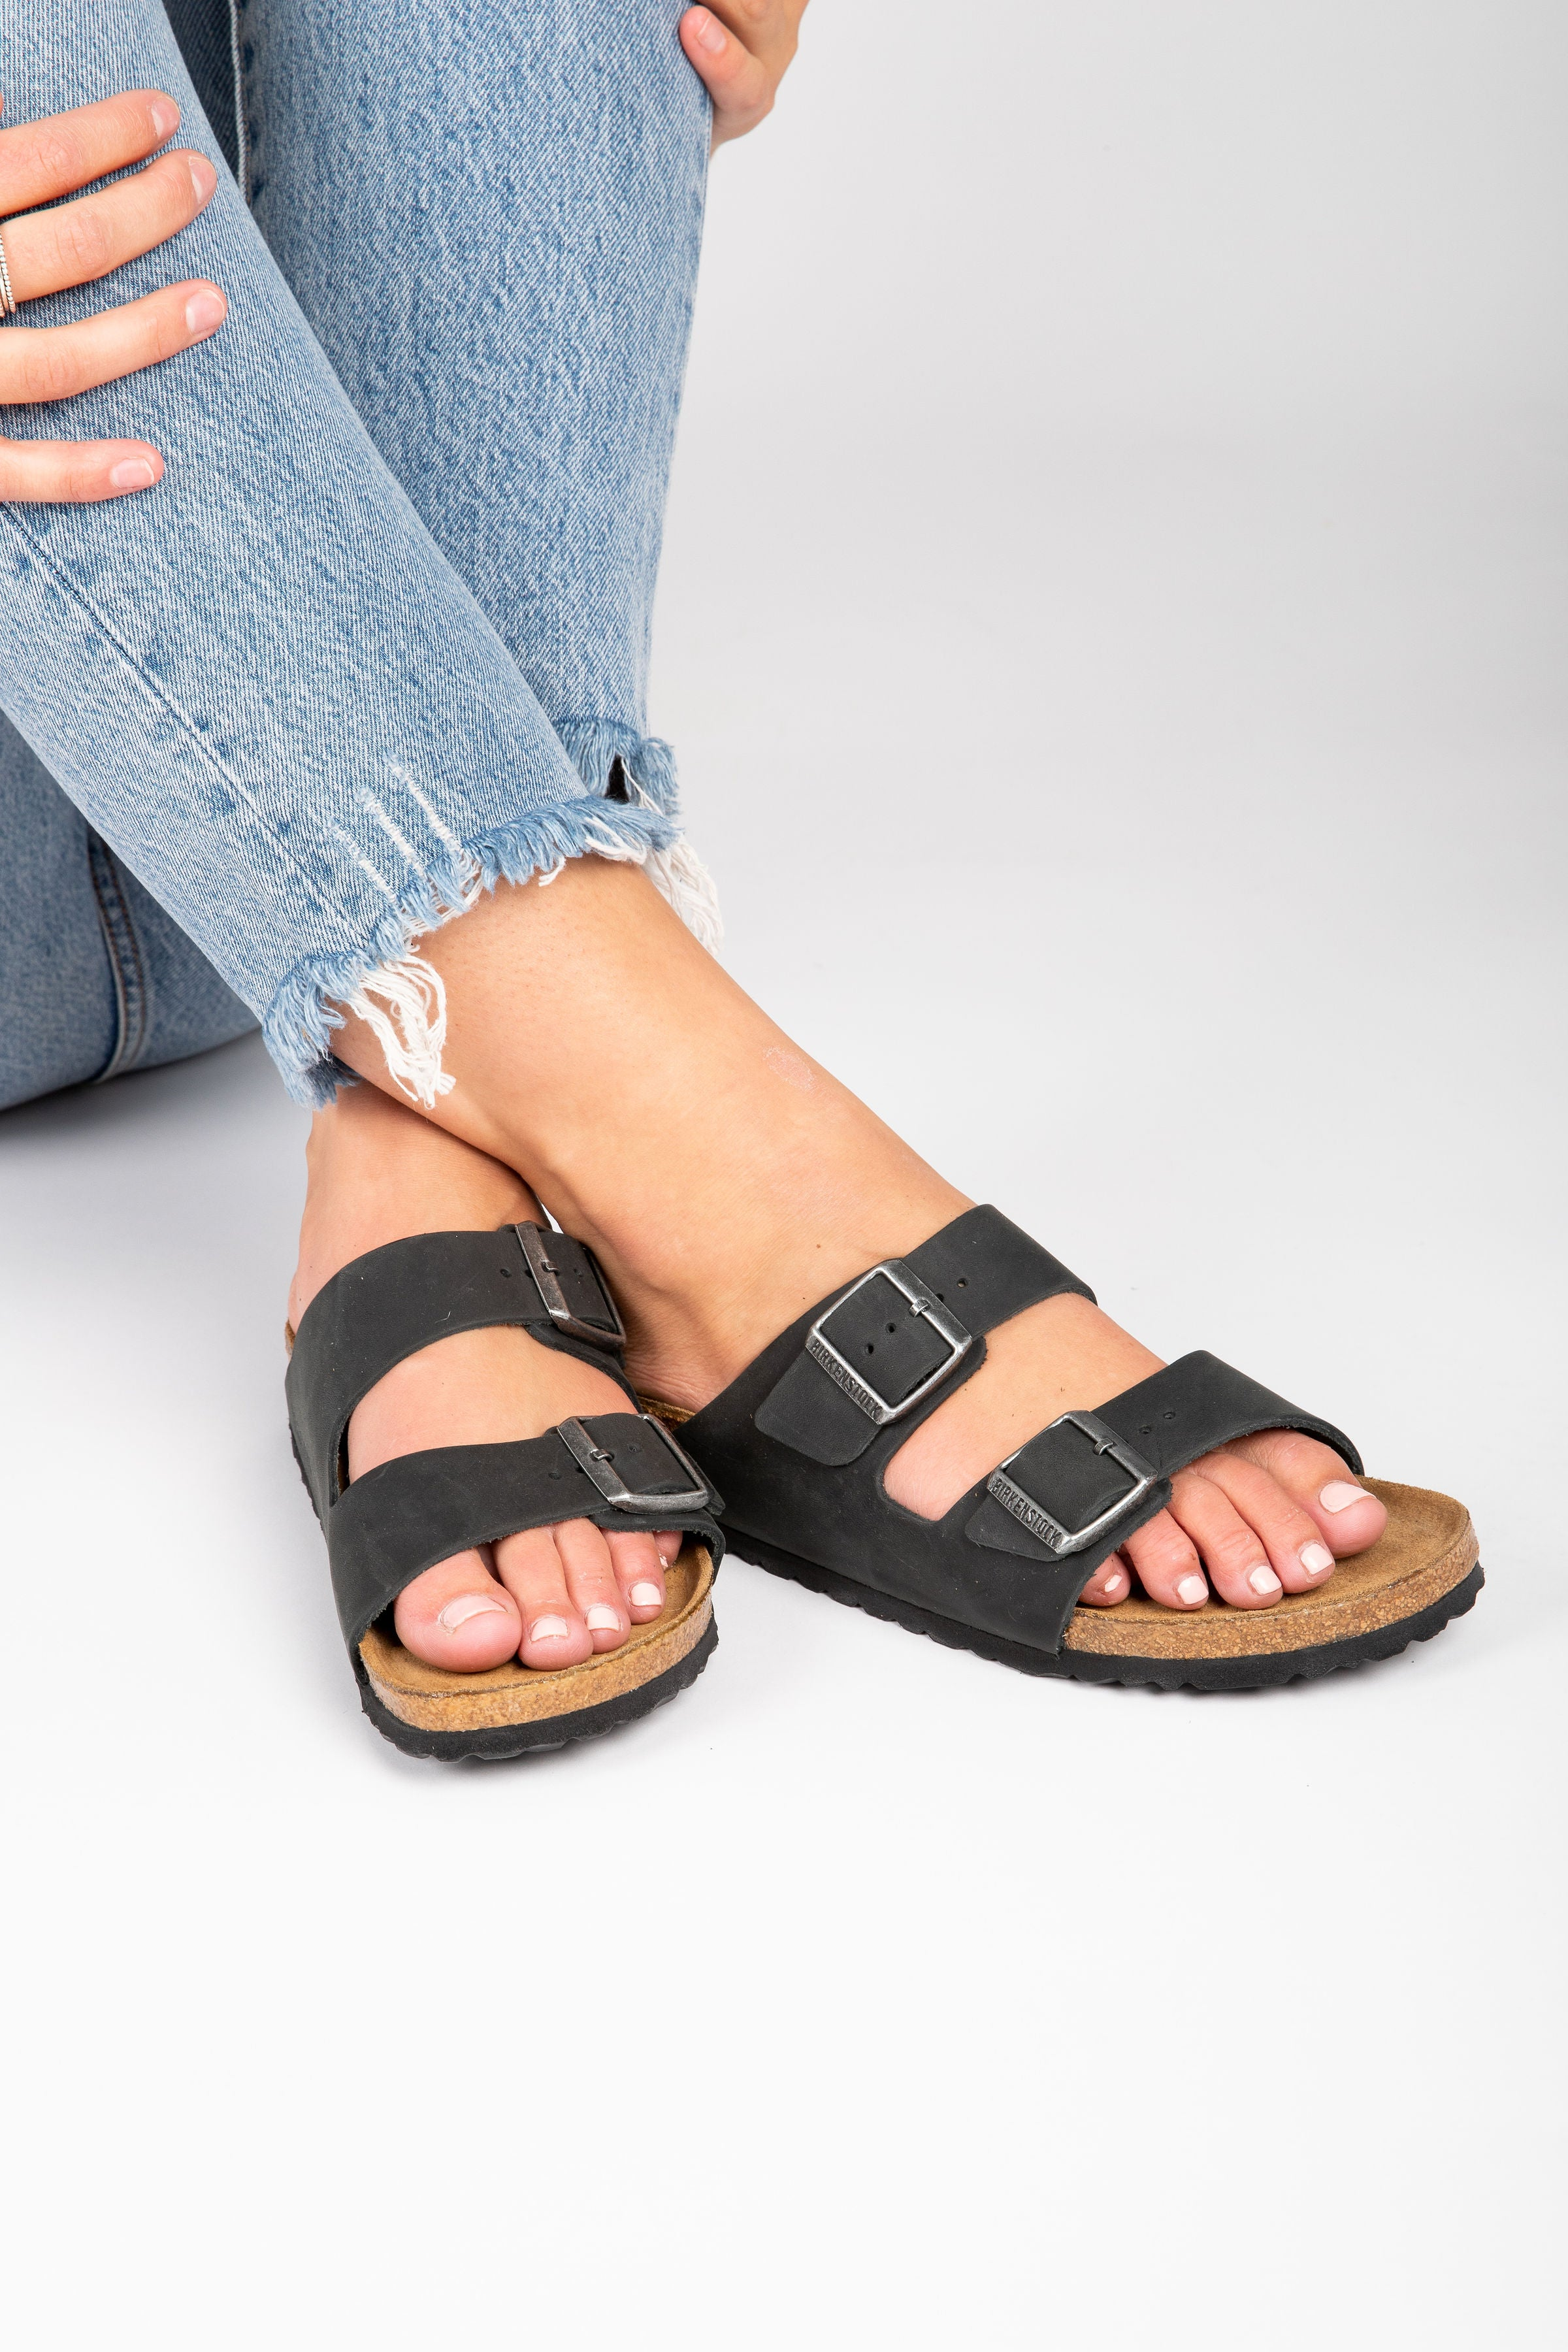 Birkenstock: Arizona Oiled Nubuck Leather Soft Footbed in Black (Narrow Fit)